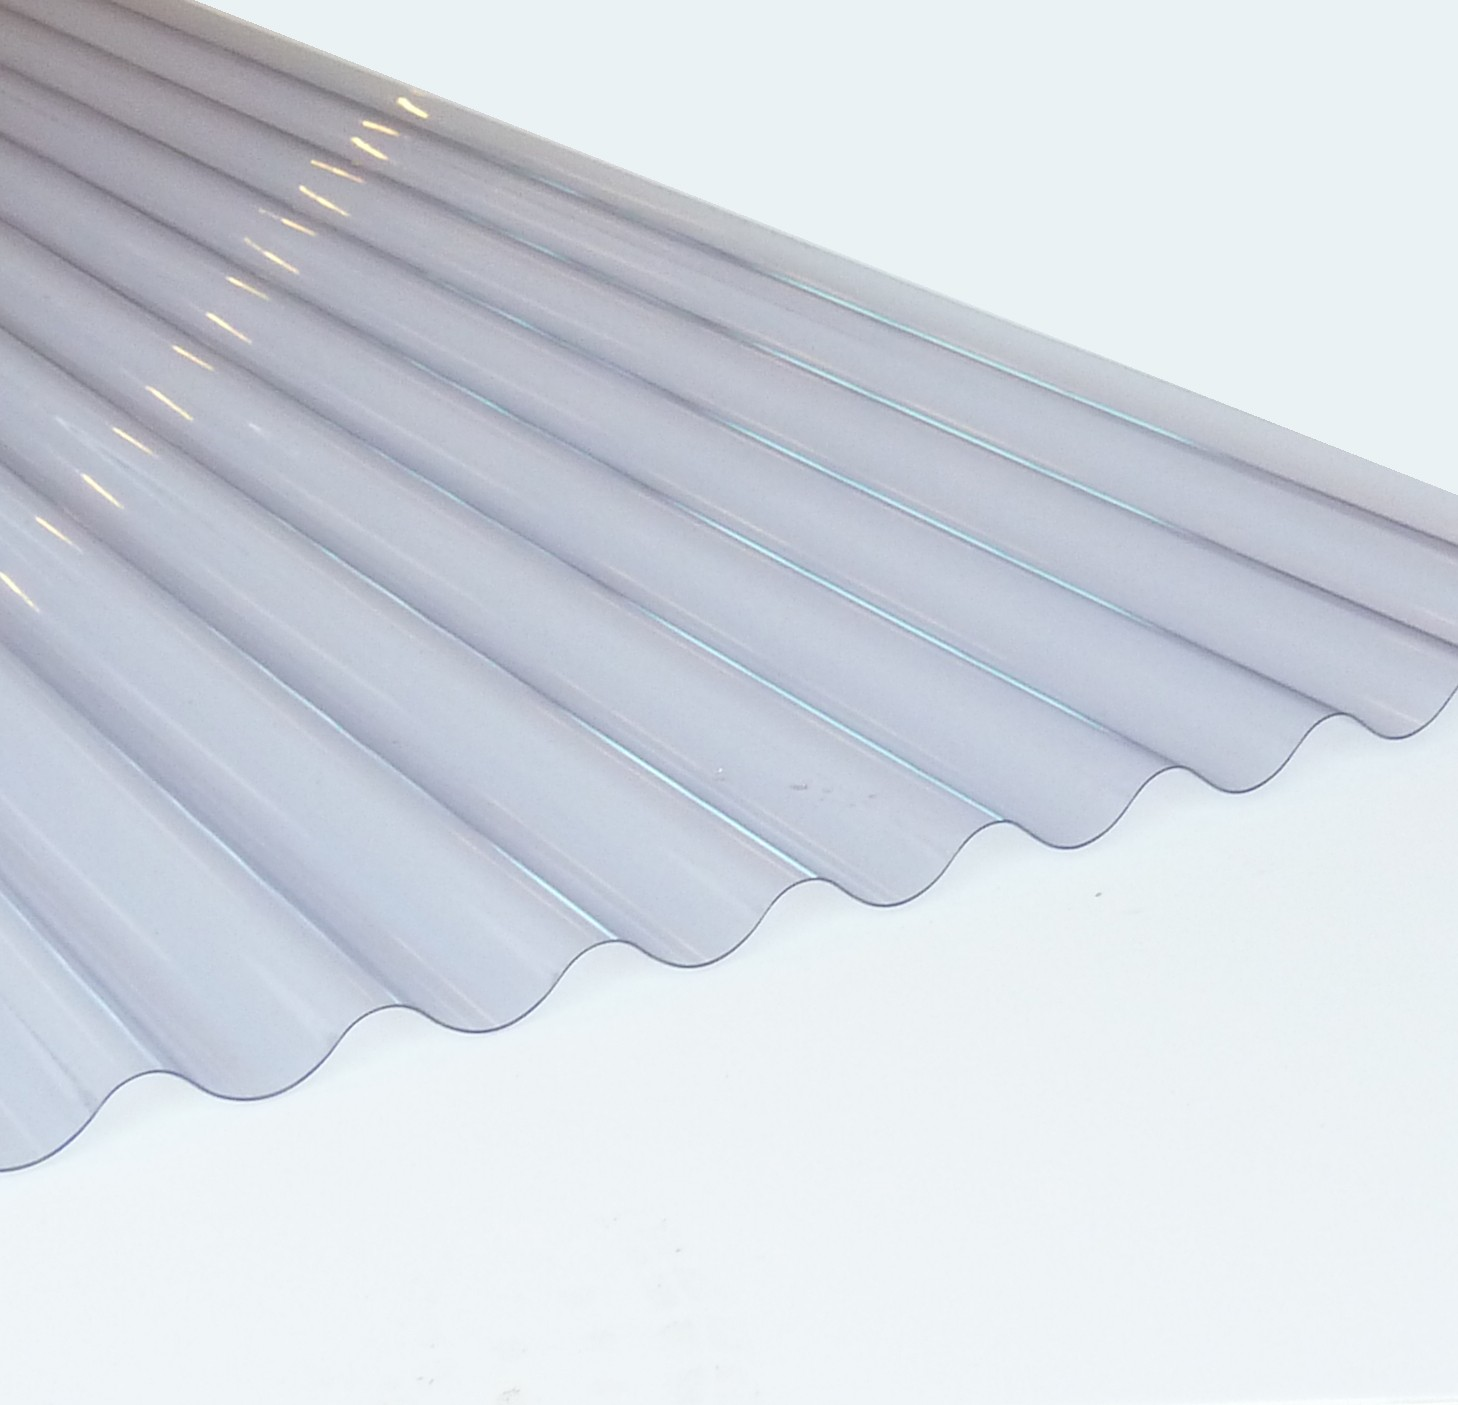 Corrugated Pvc Roofing Sheet 1 1mm Heavy Duty